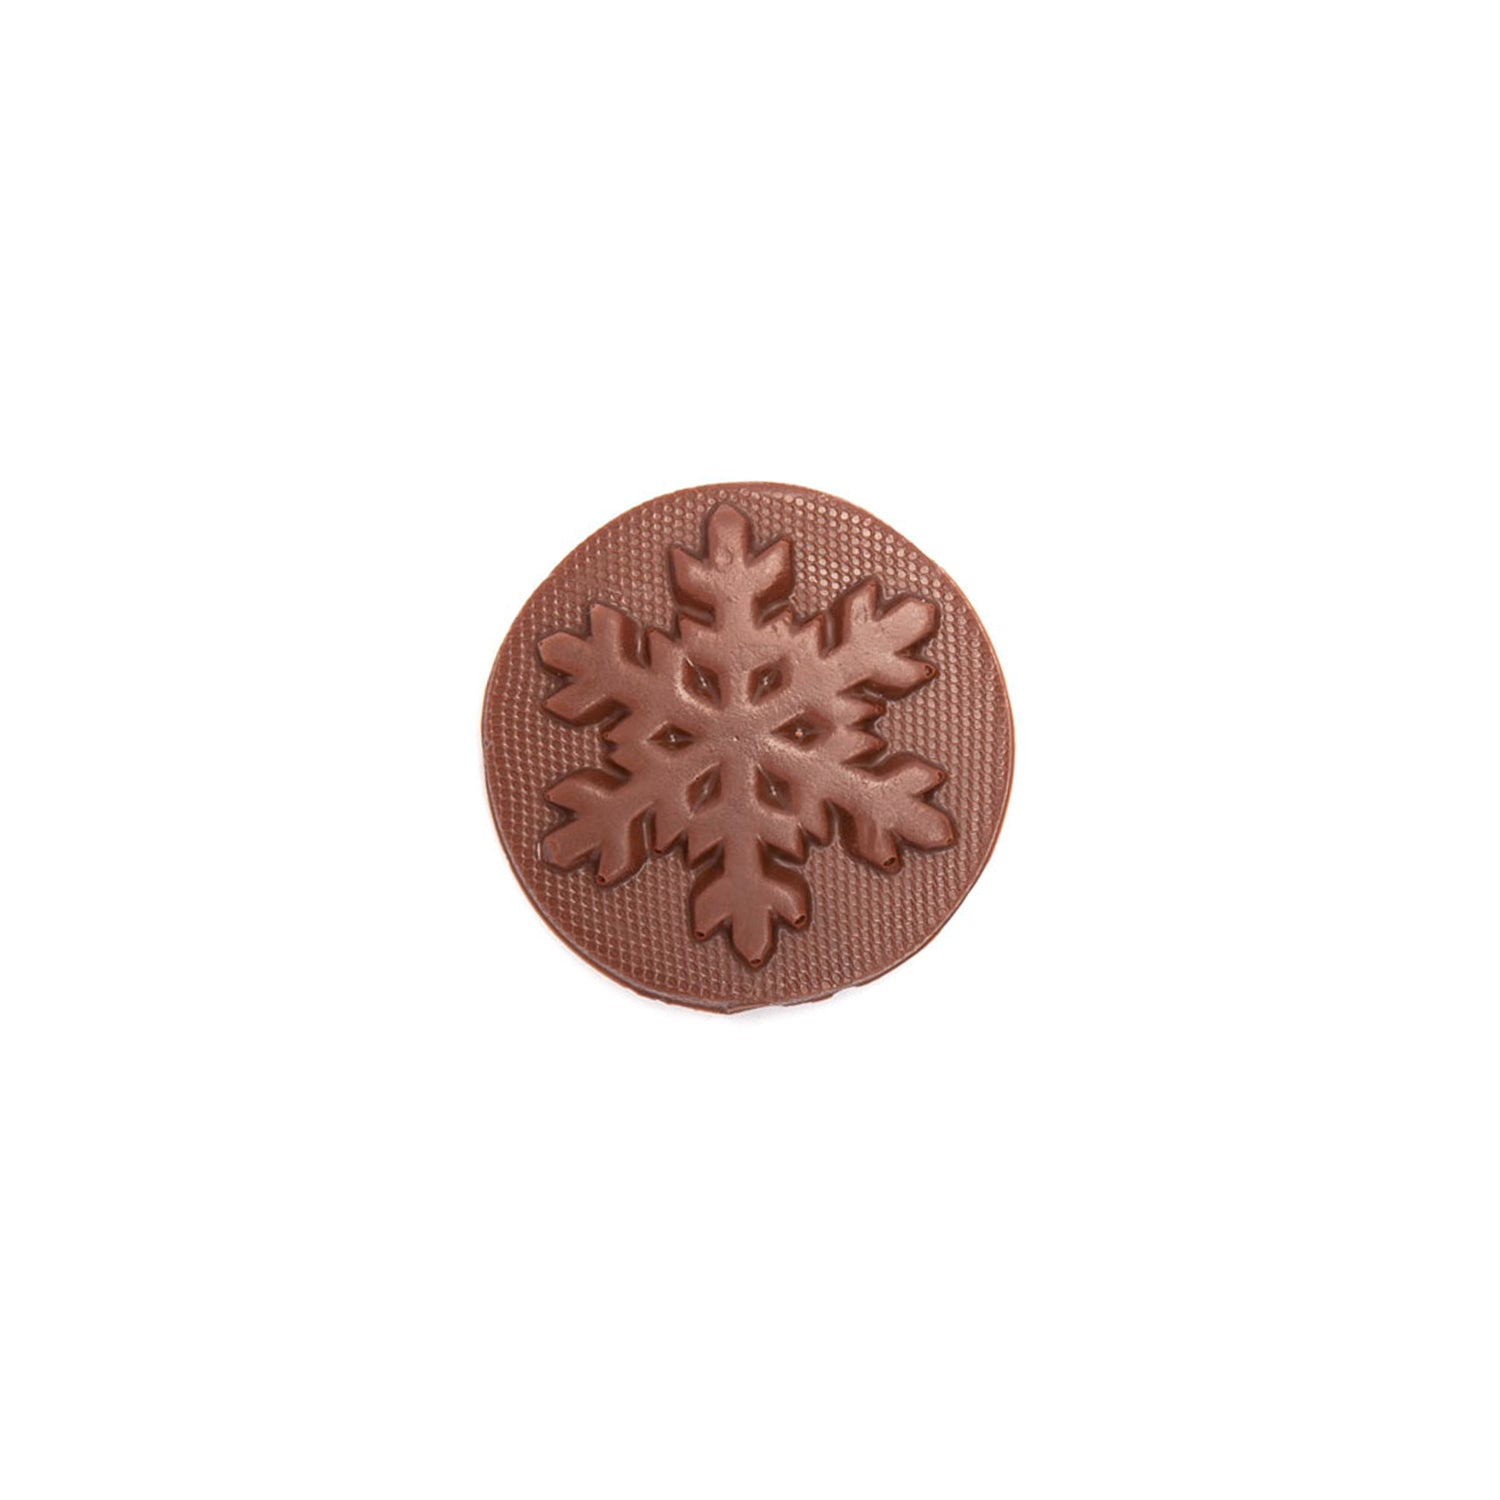 Product photo of milk chocolate snowflake mold. A round disk of chocolate with a snowflake.